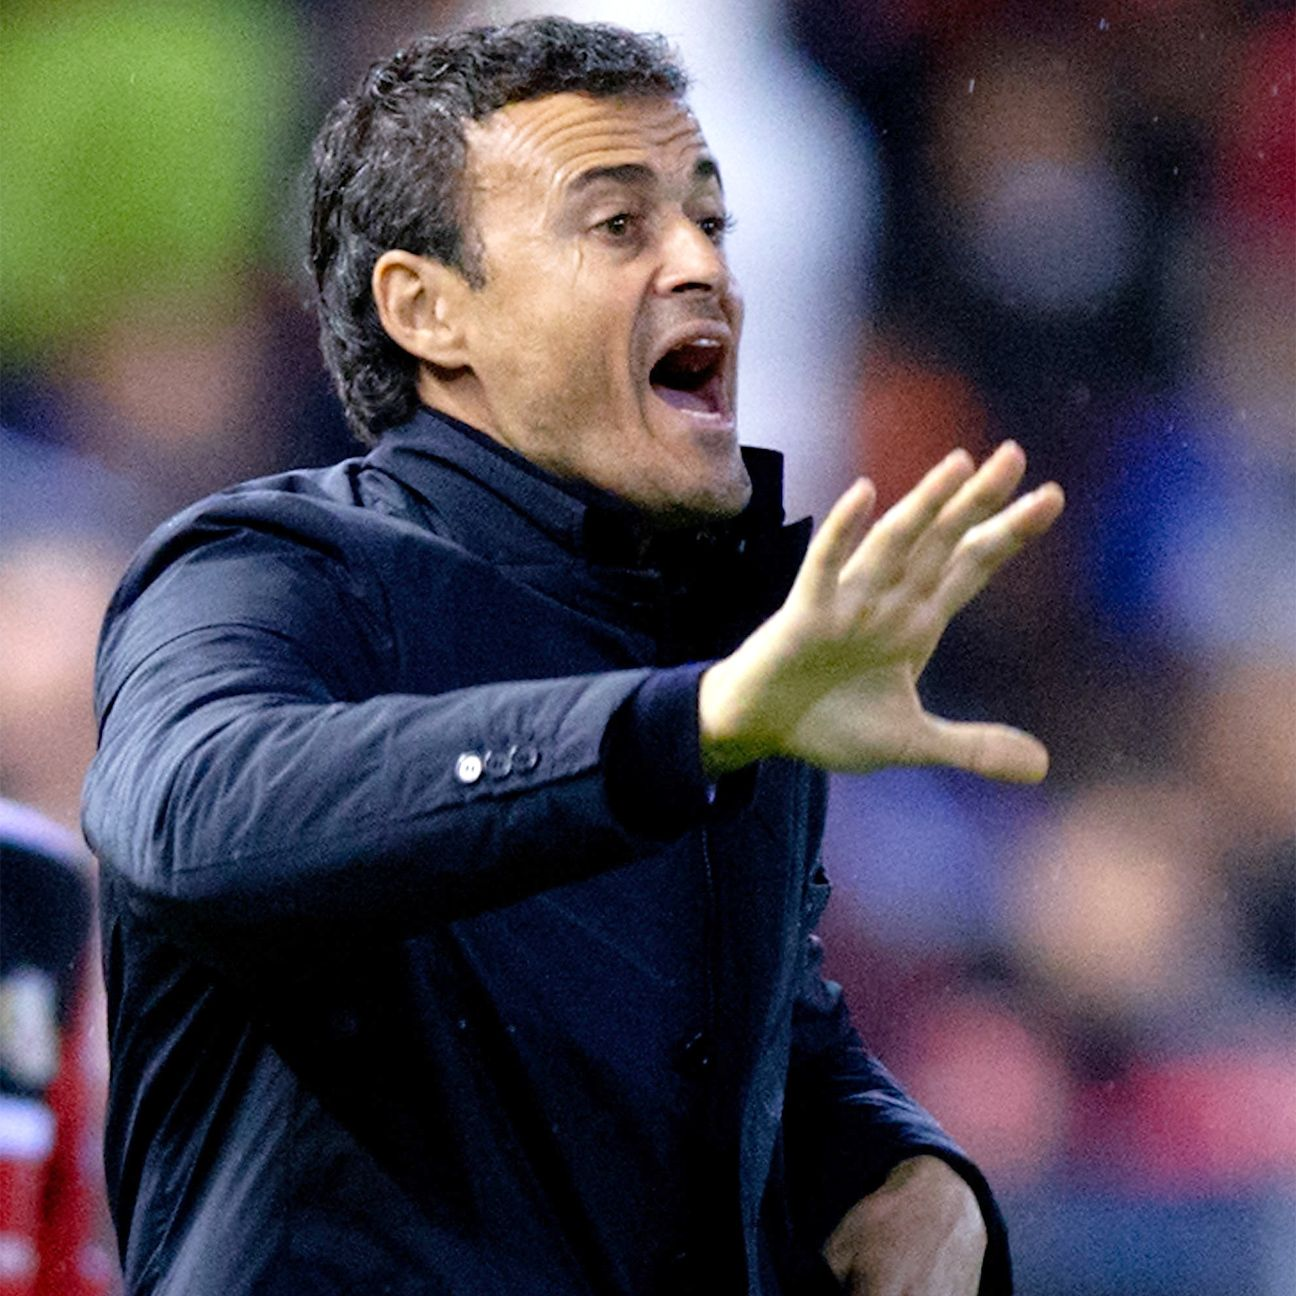 Barcelona are now in control of their own destiny to win La Liga thanks in large part to manager Luis Enrique.